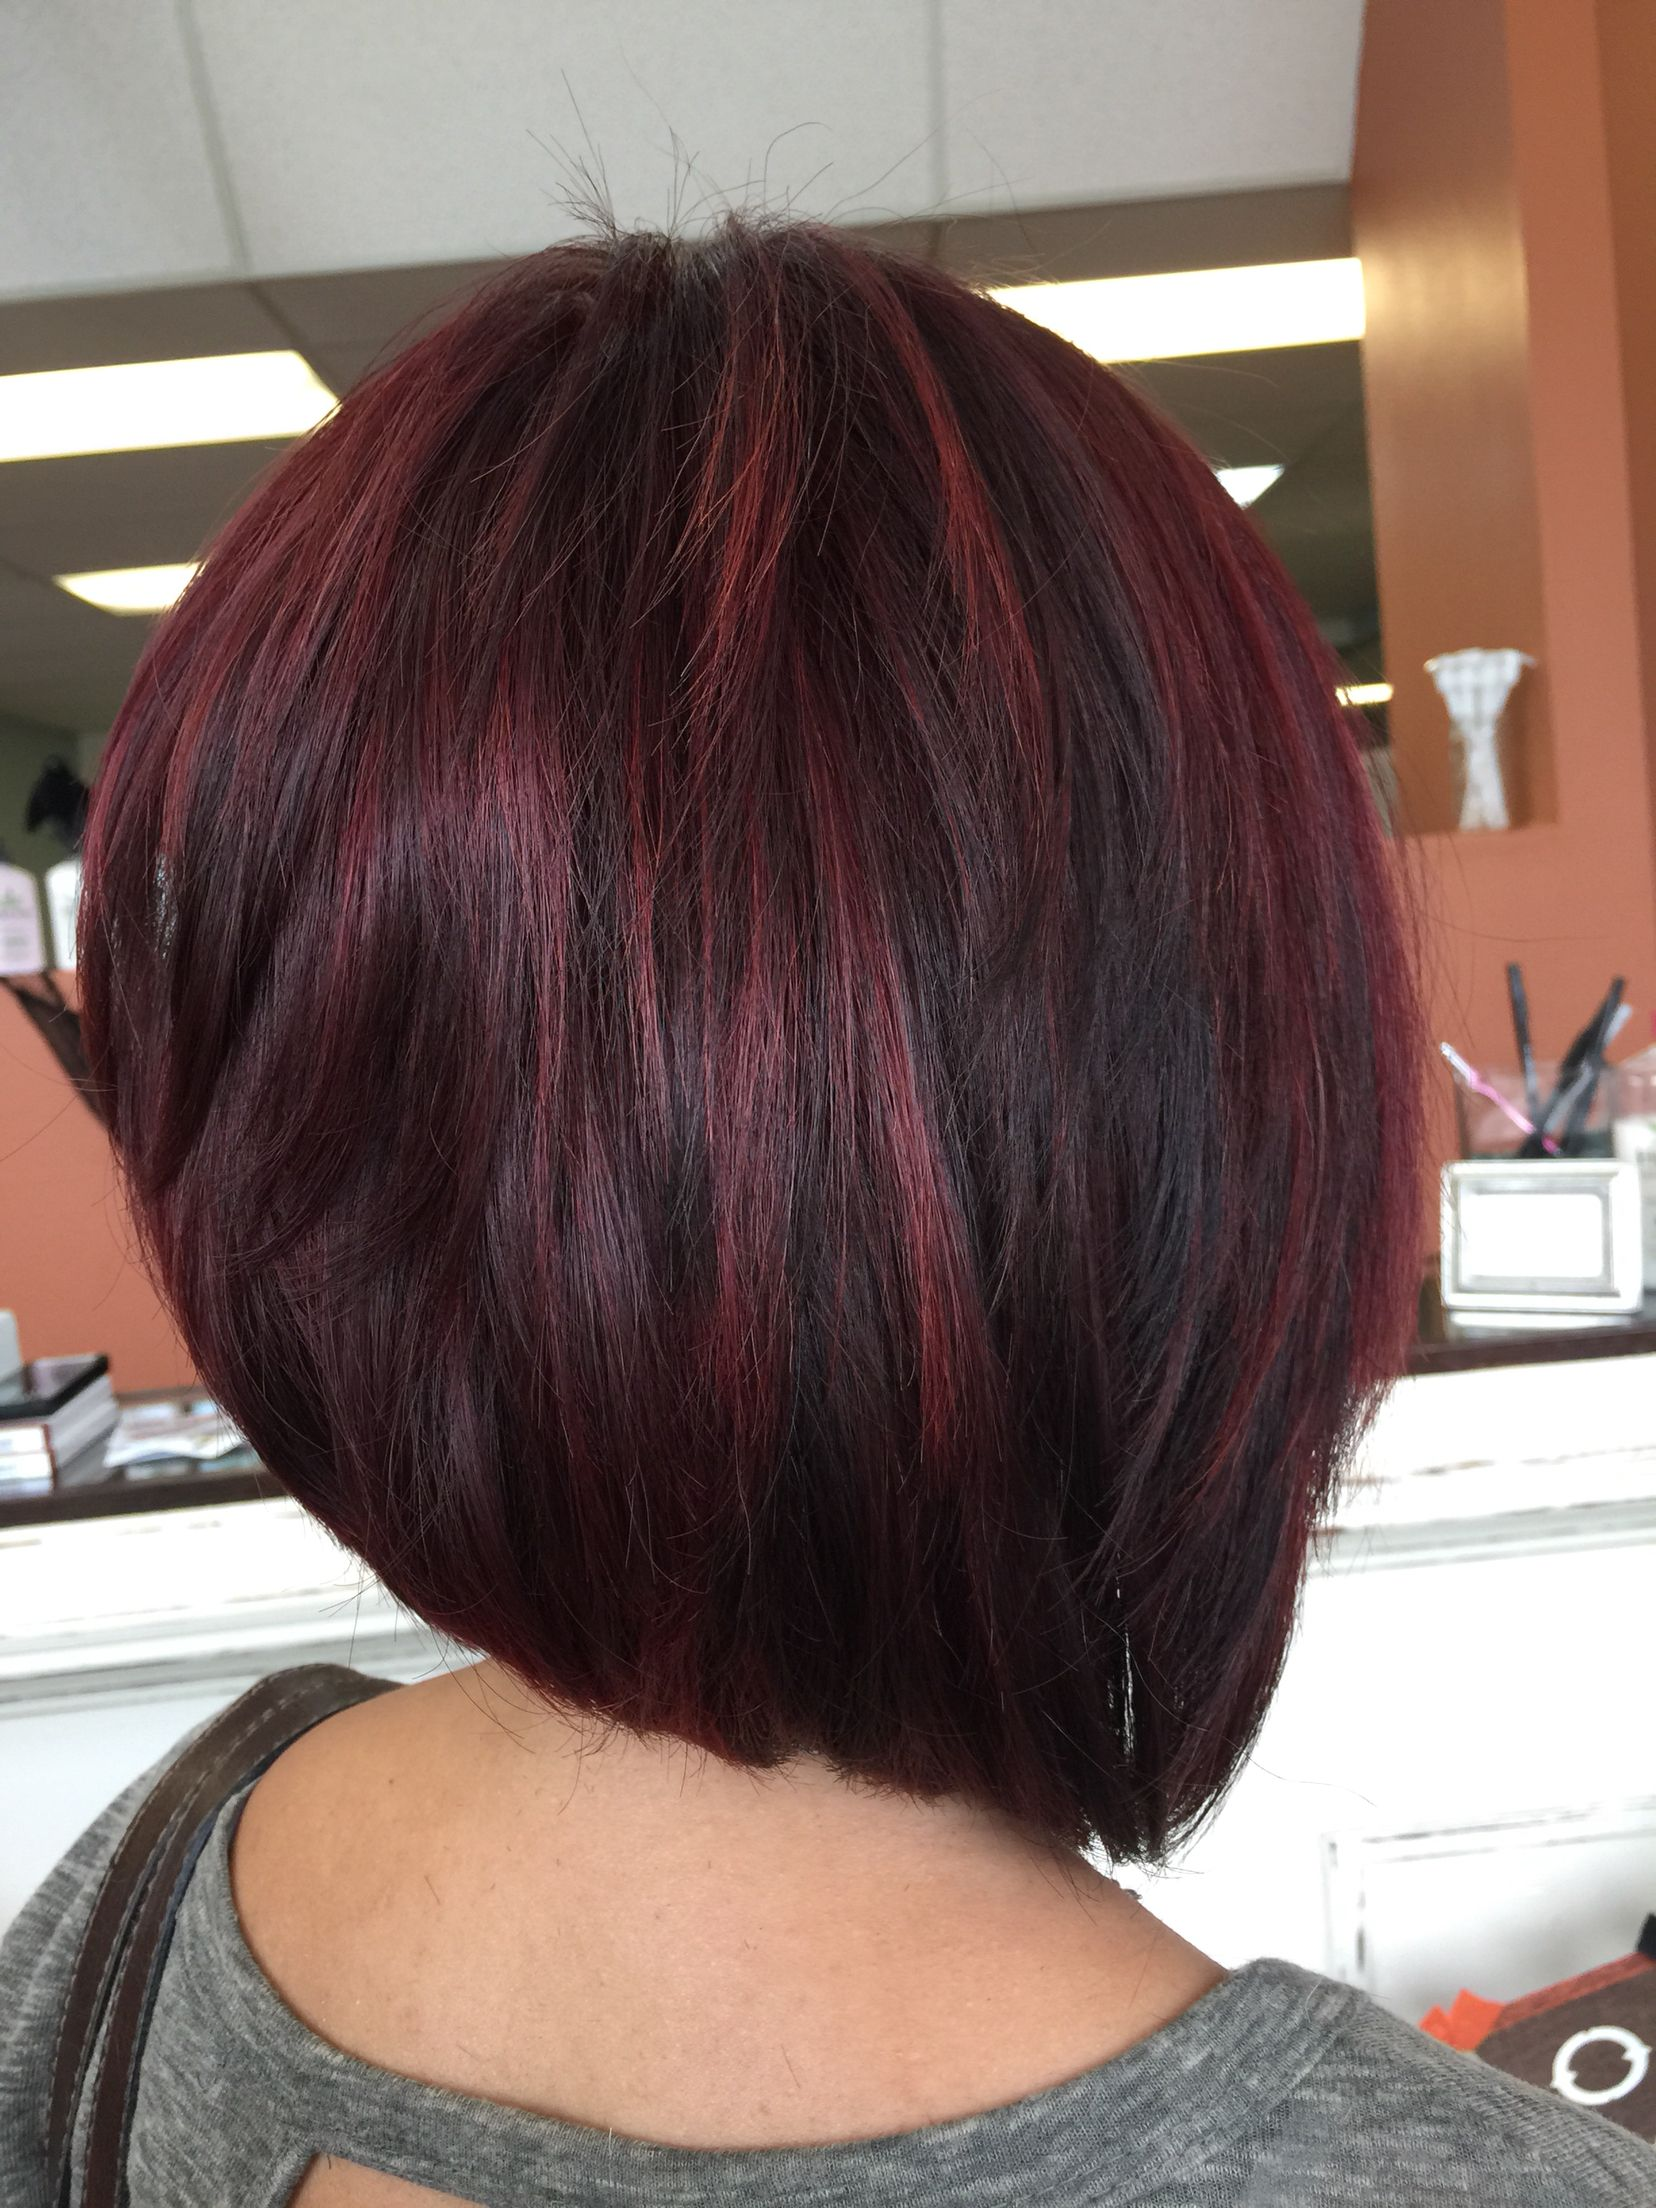 Pin On Hair By Brandi